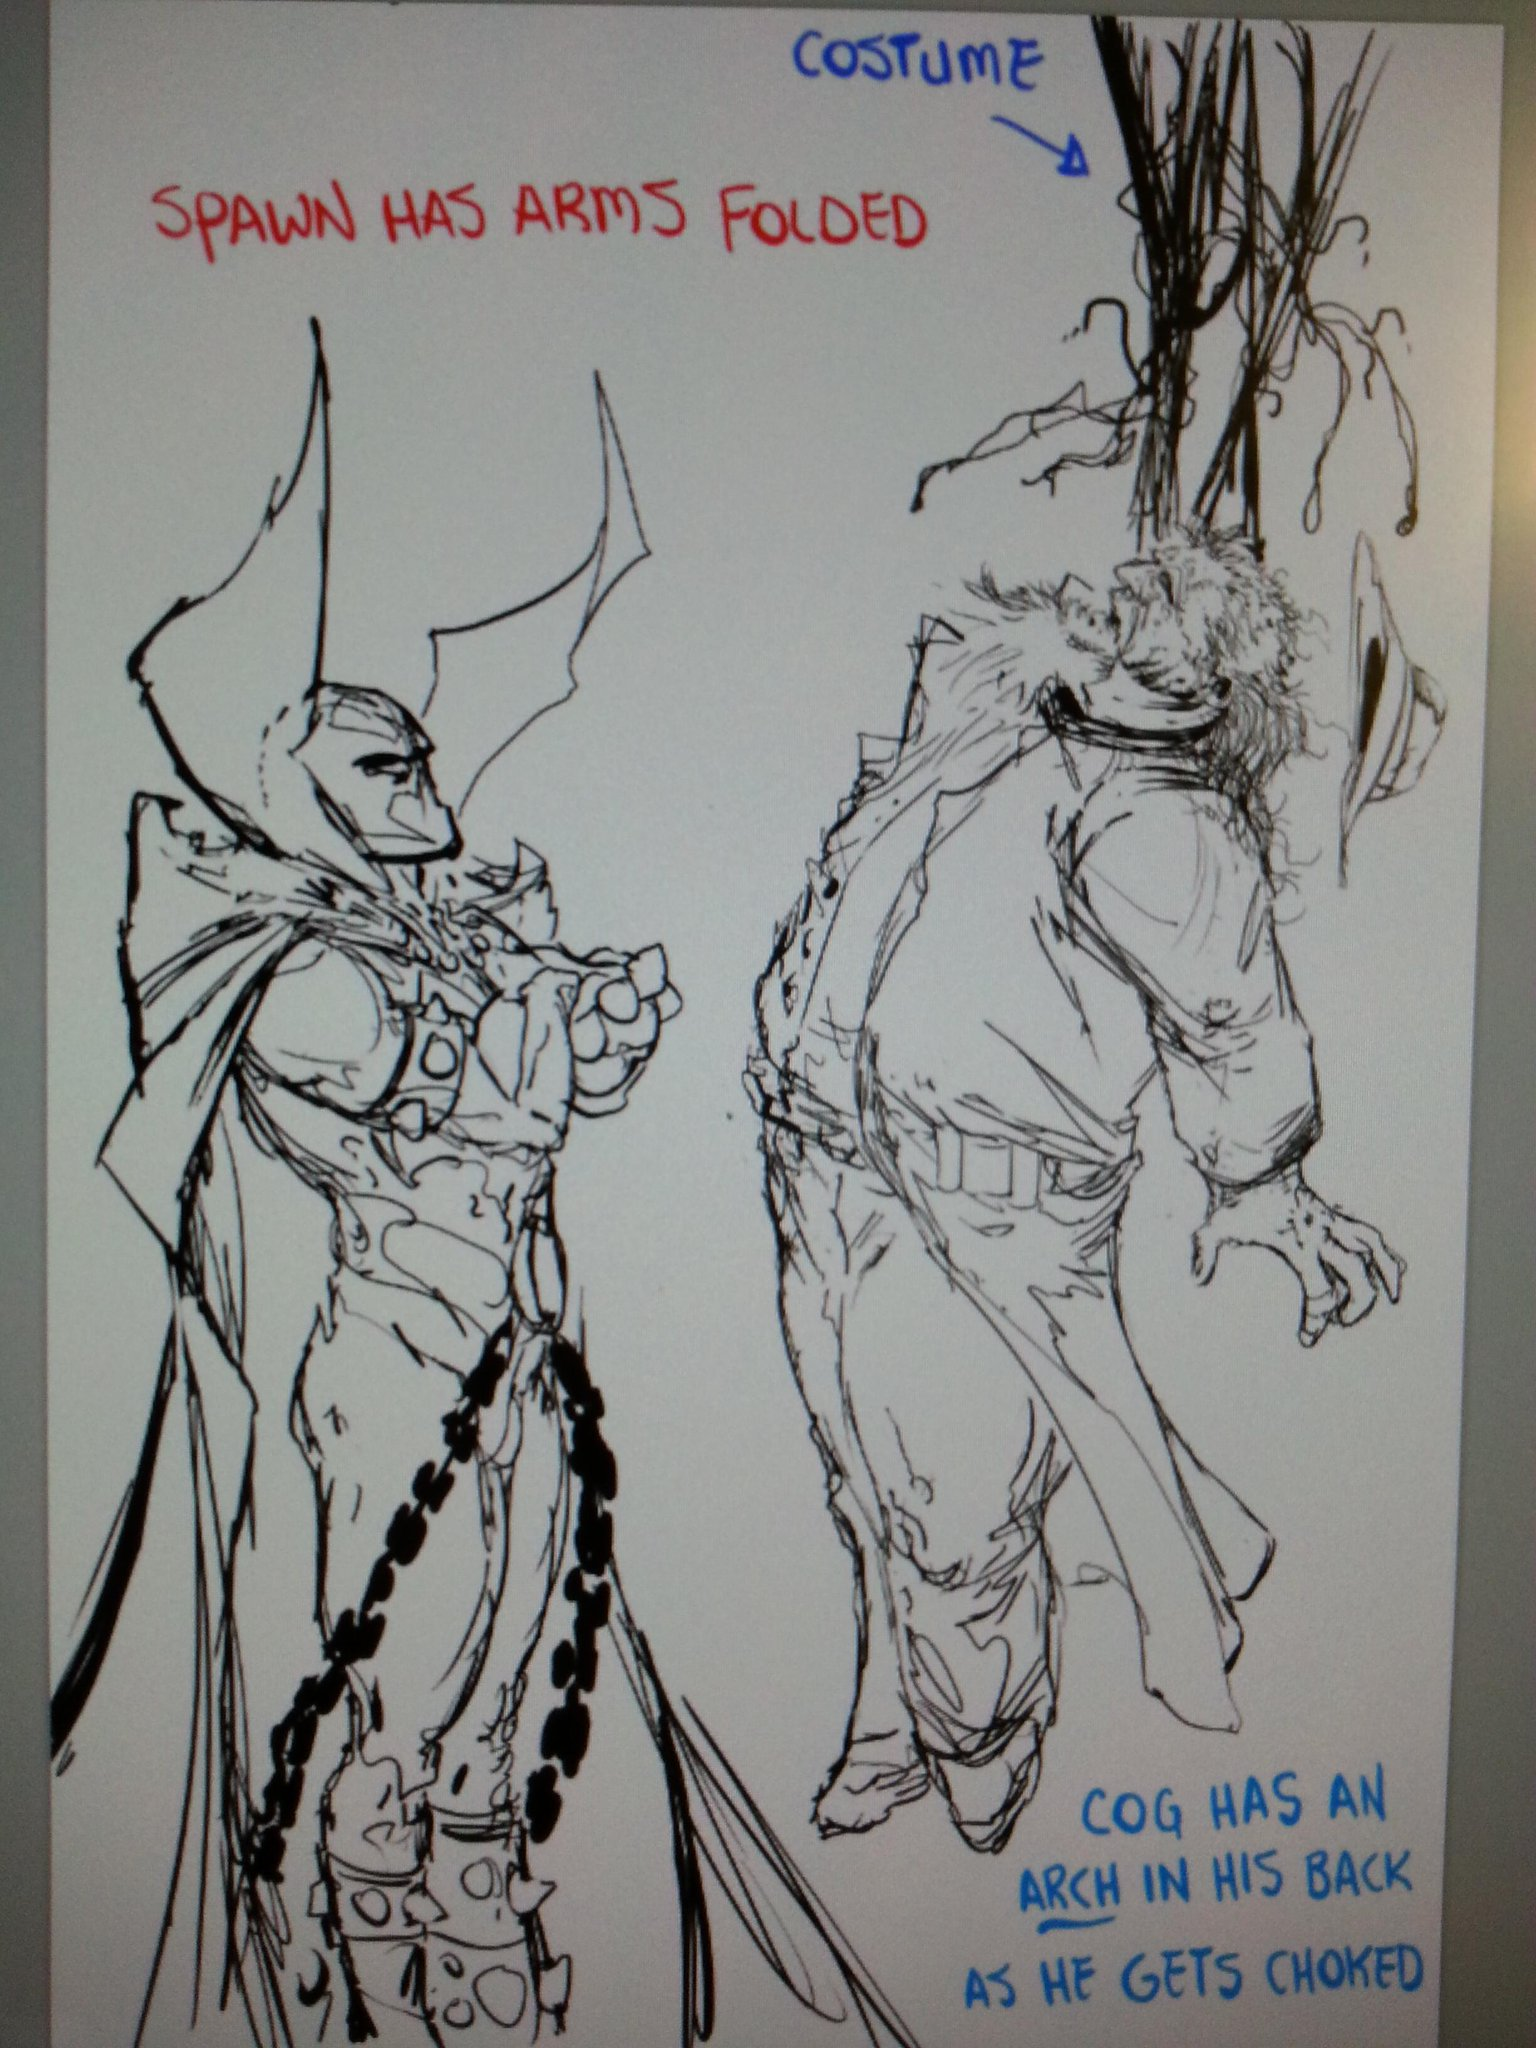 COMICS: Here is a rough sketch for an upcoming cover (Spawn #240). Will show the tight pencils and inks later.  TODD http://t.co/ZILReysgvK